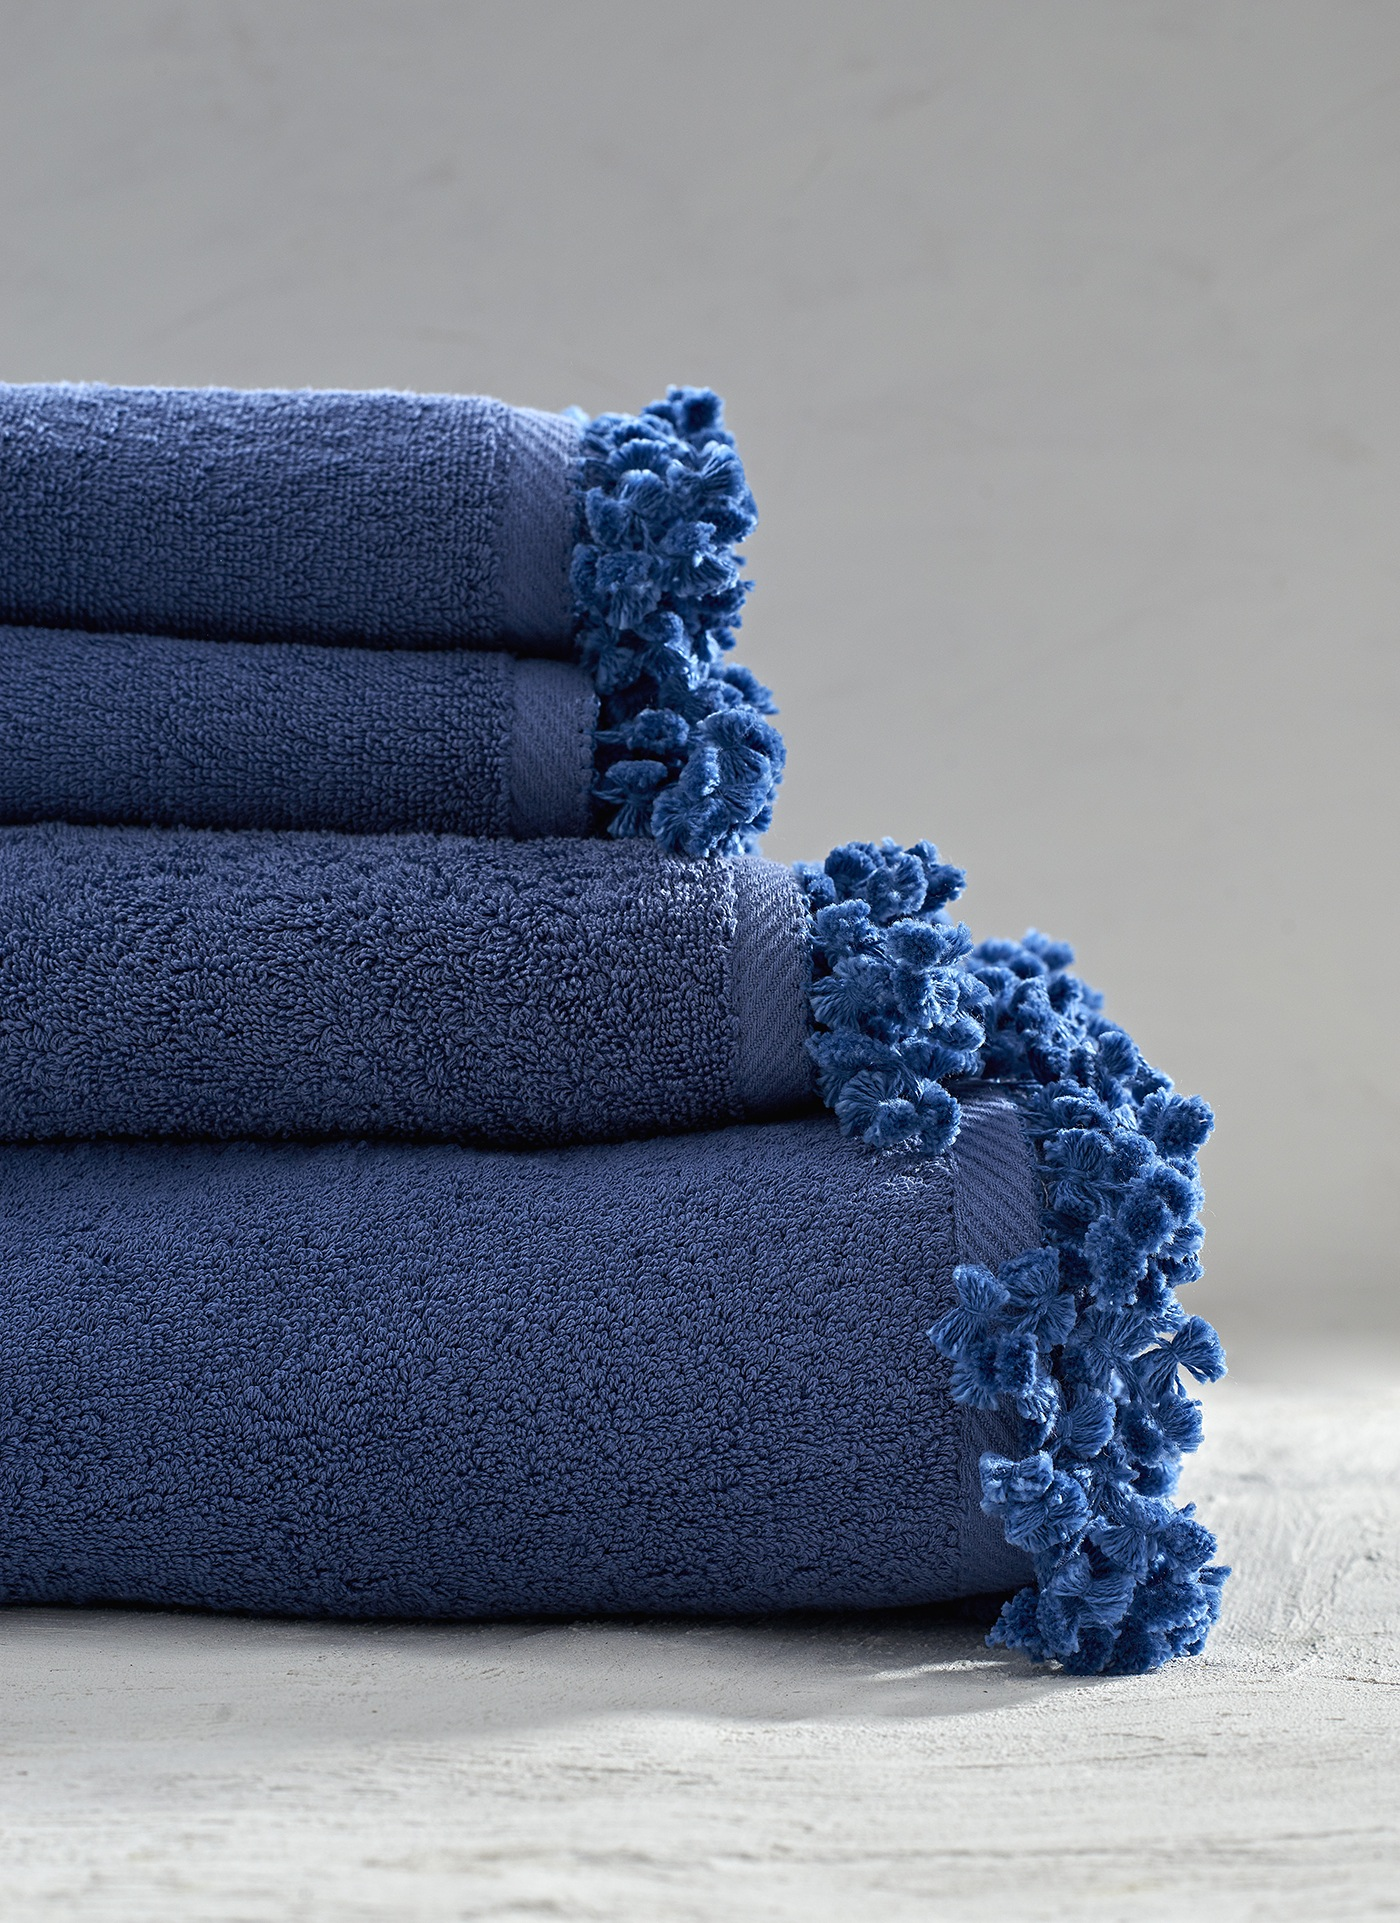 Handmade Towel Sets Aya